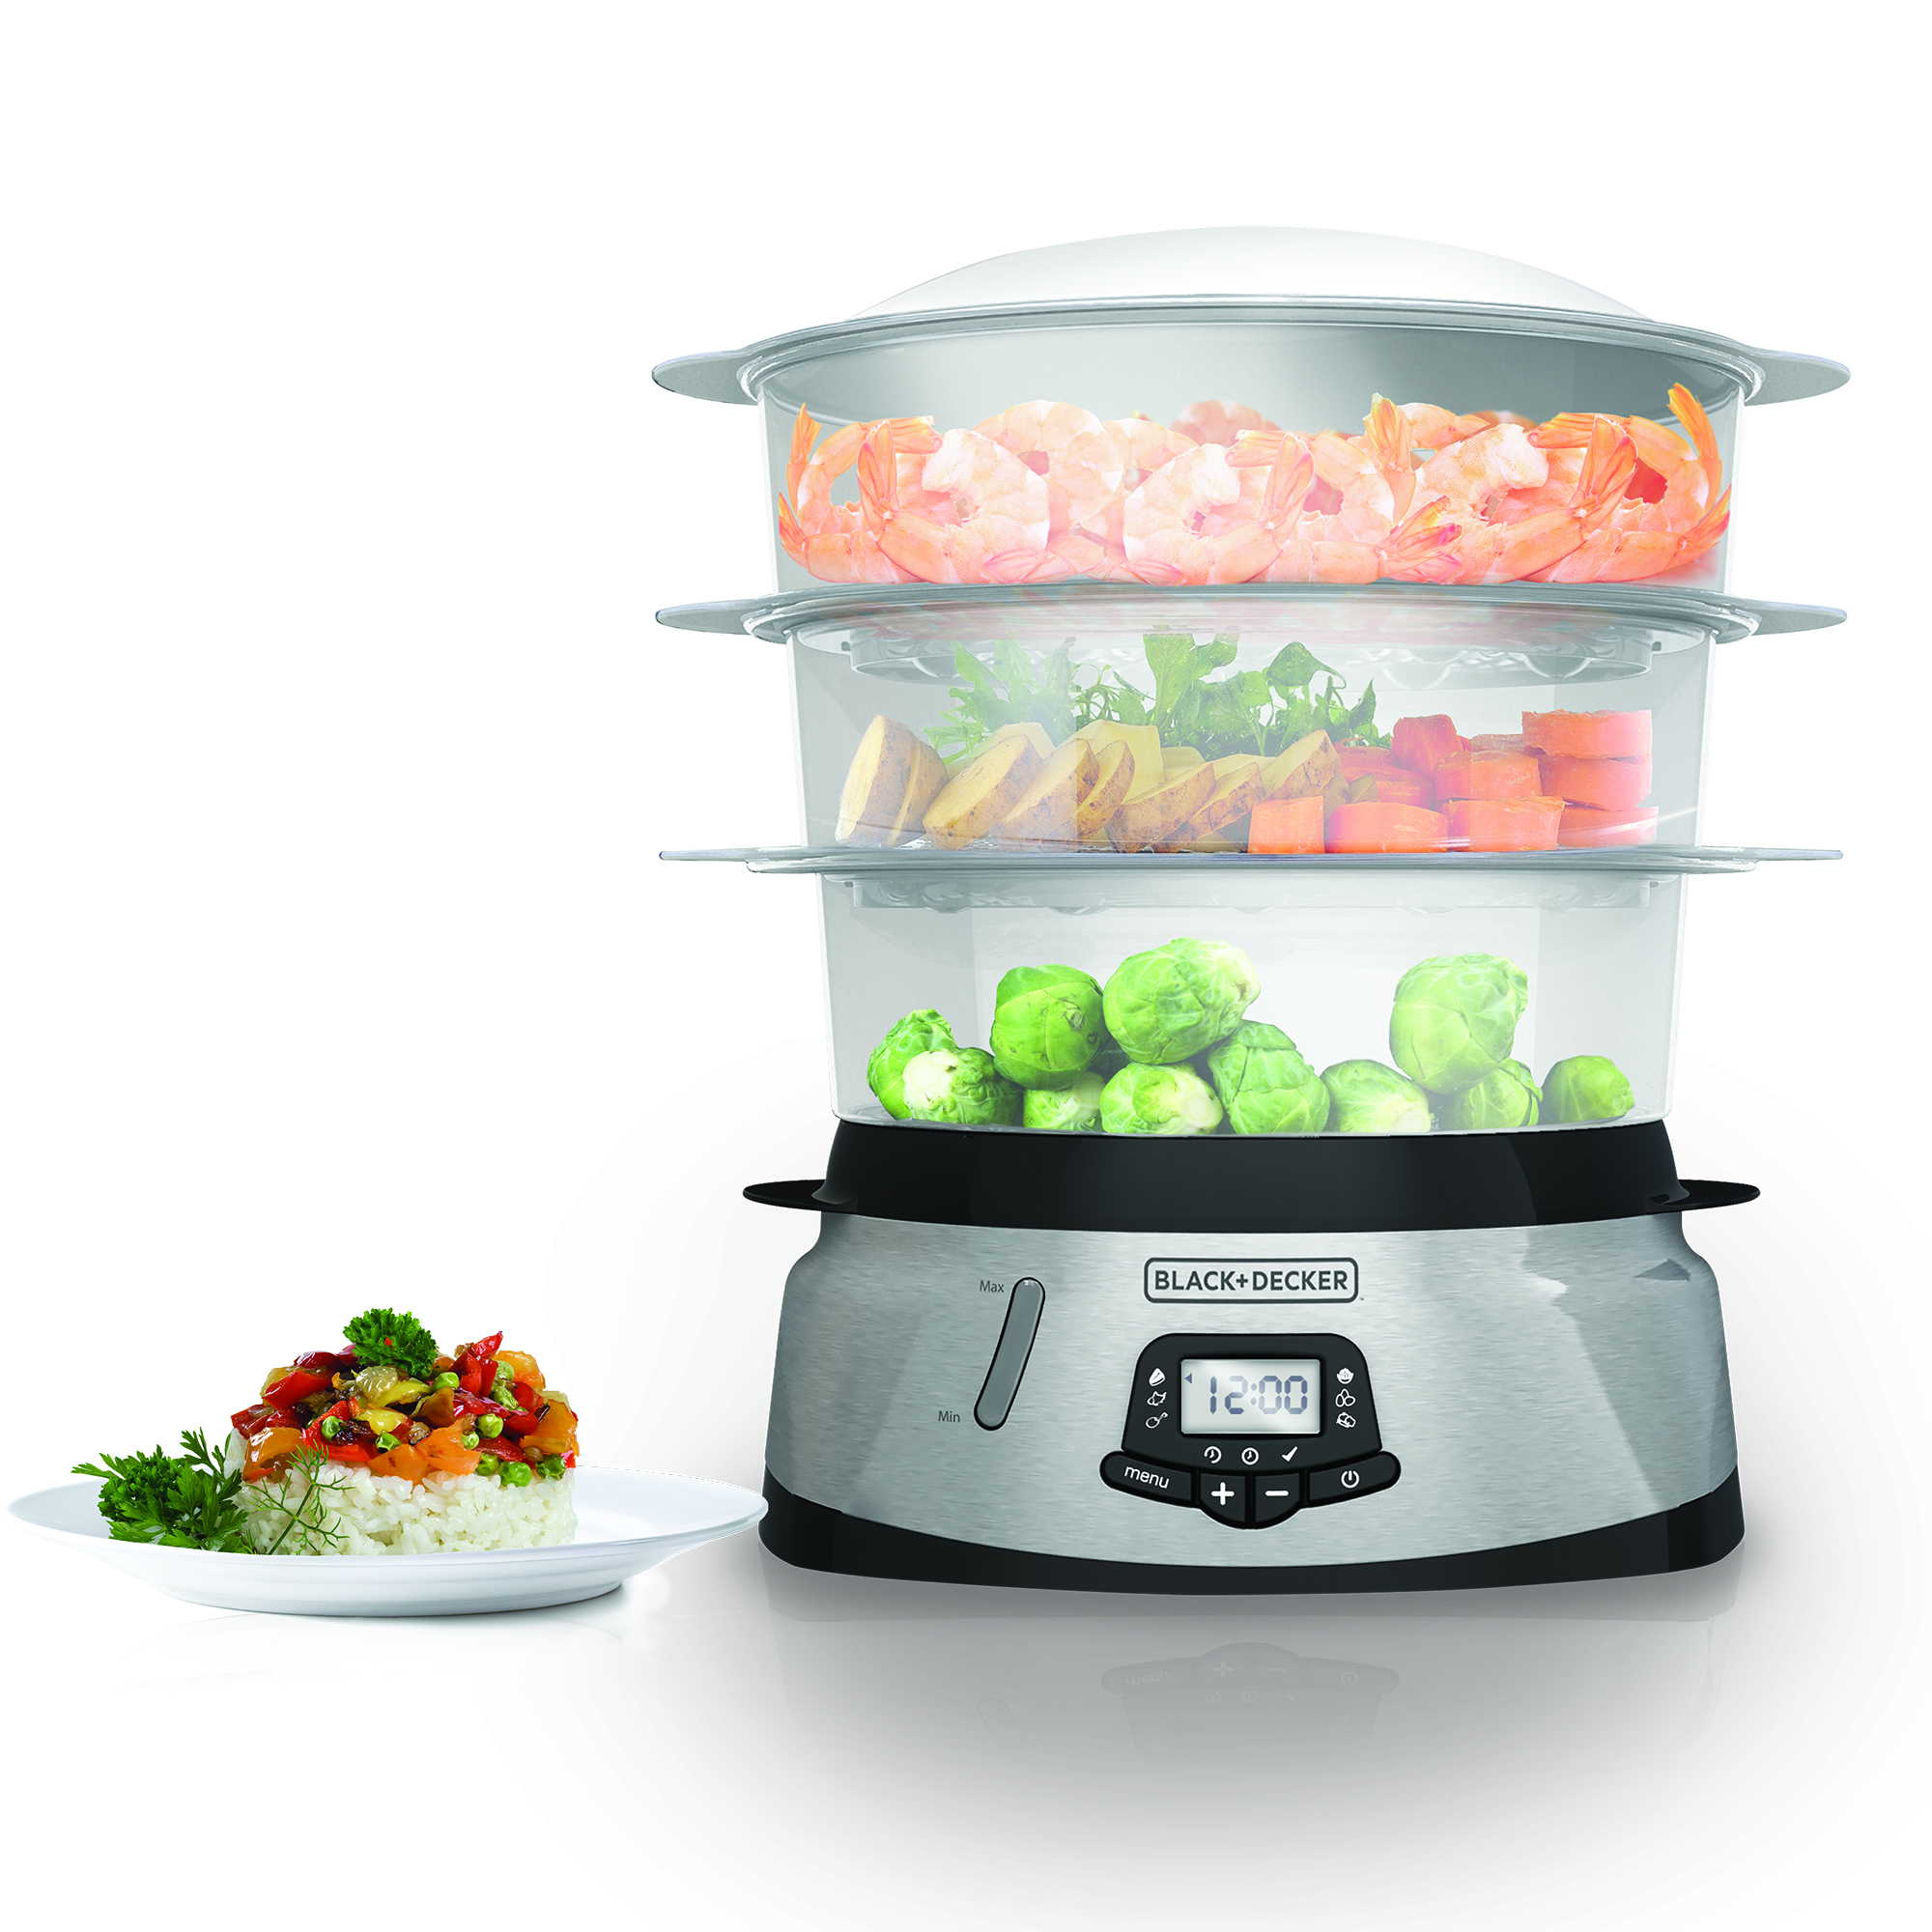 3 Tier Digital Programmable Steamer Black And Decker